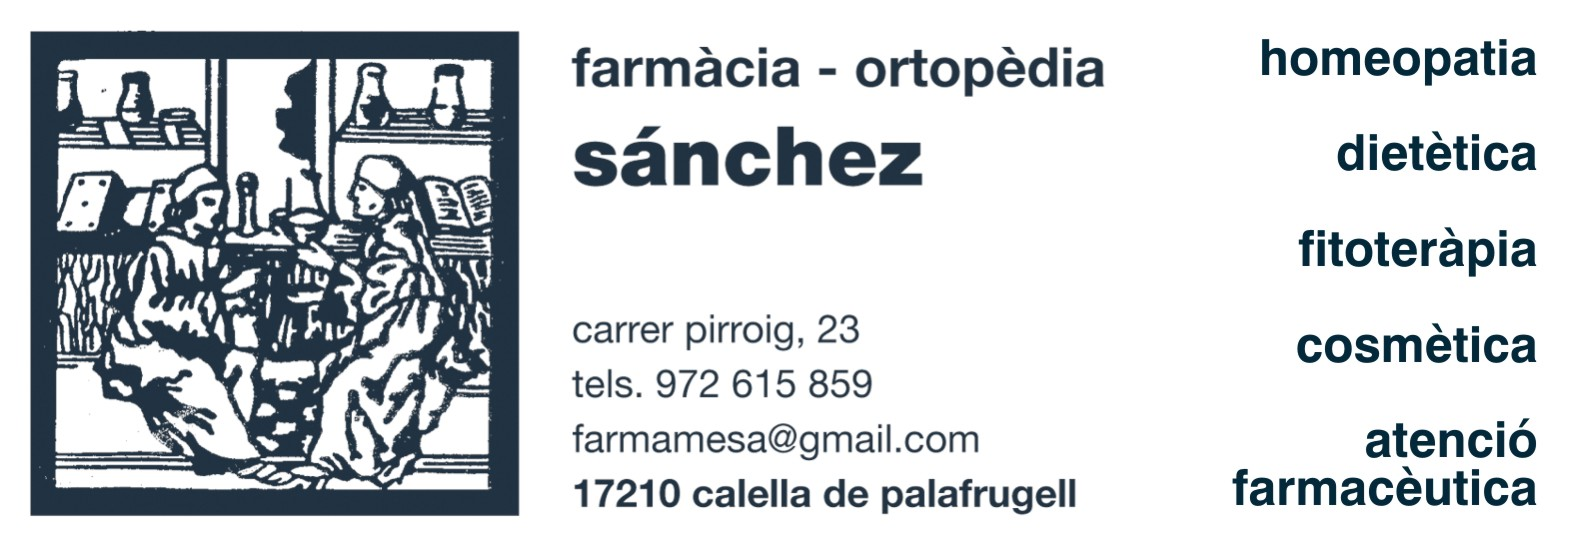 FARMACIA SANCHEZ